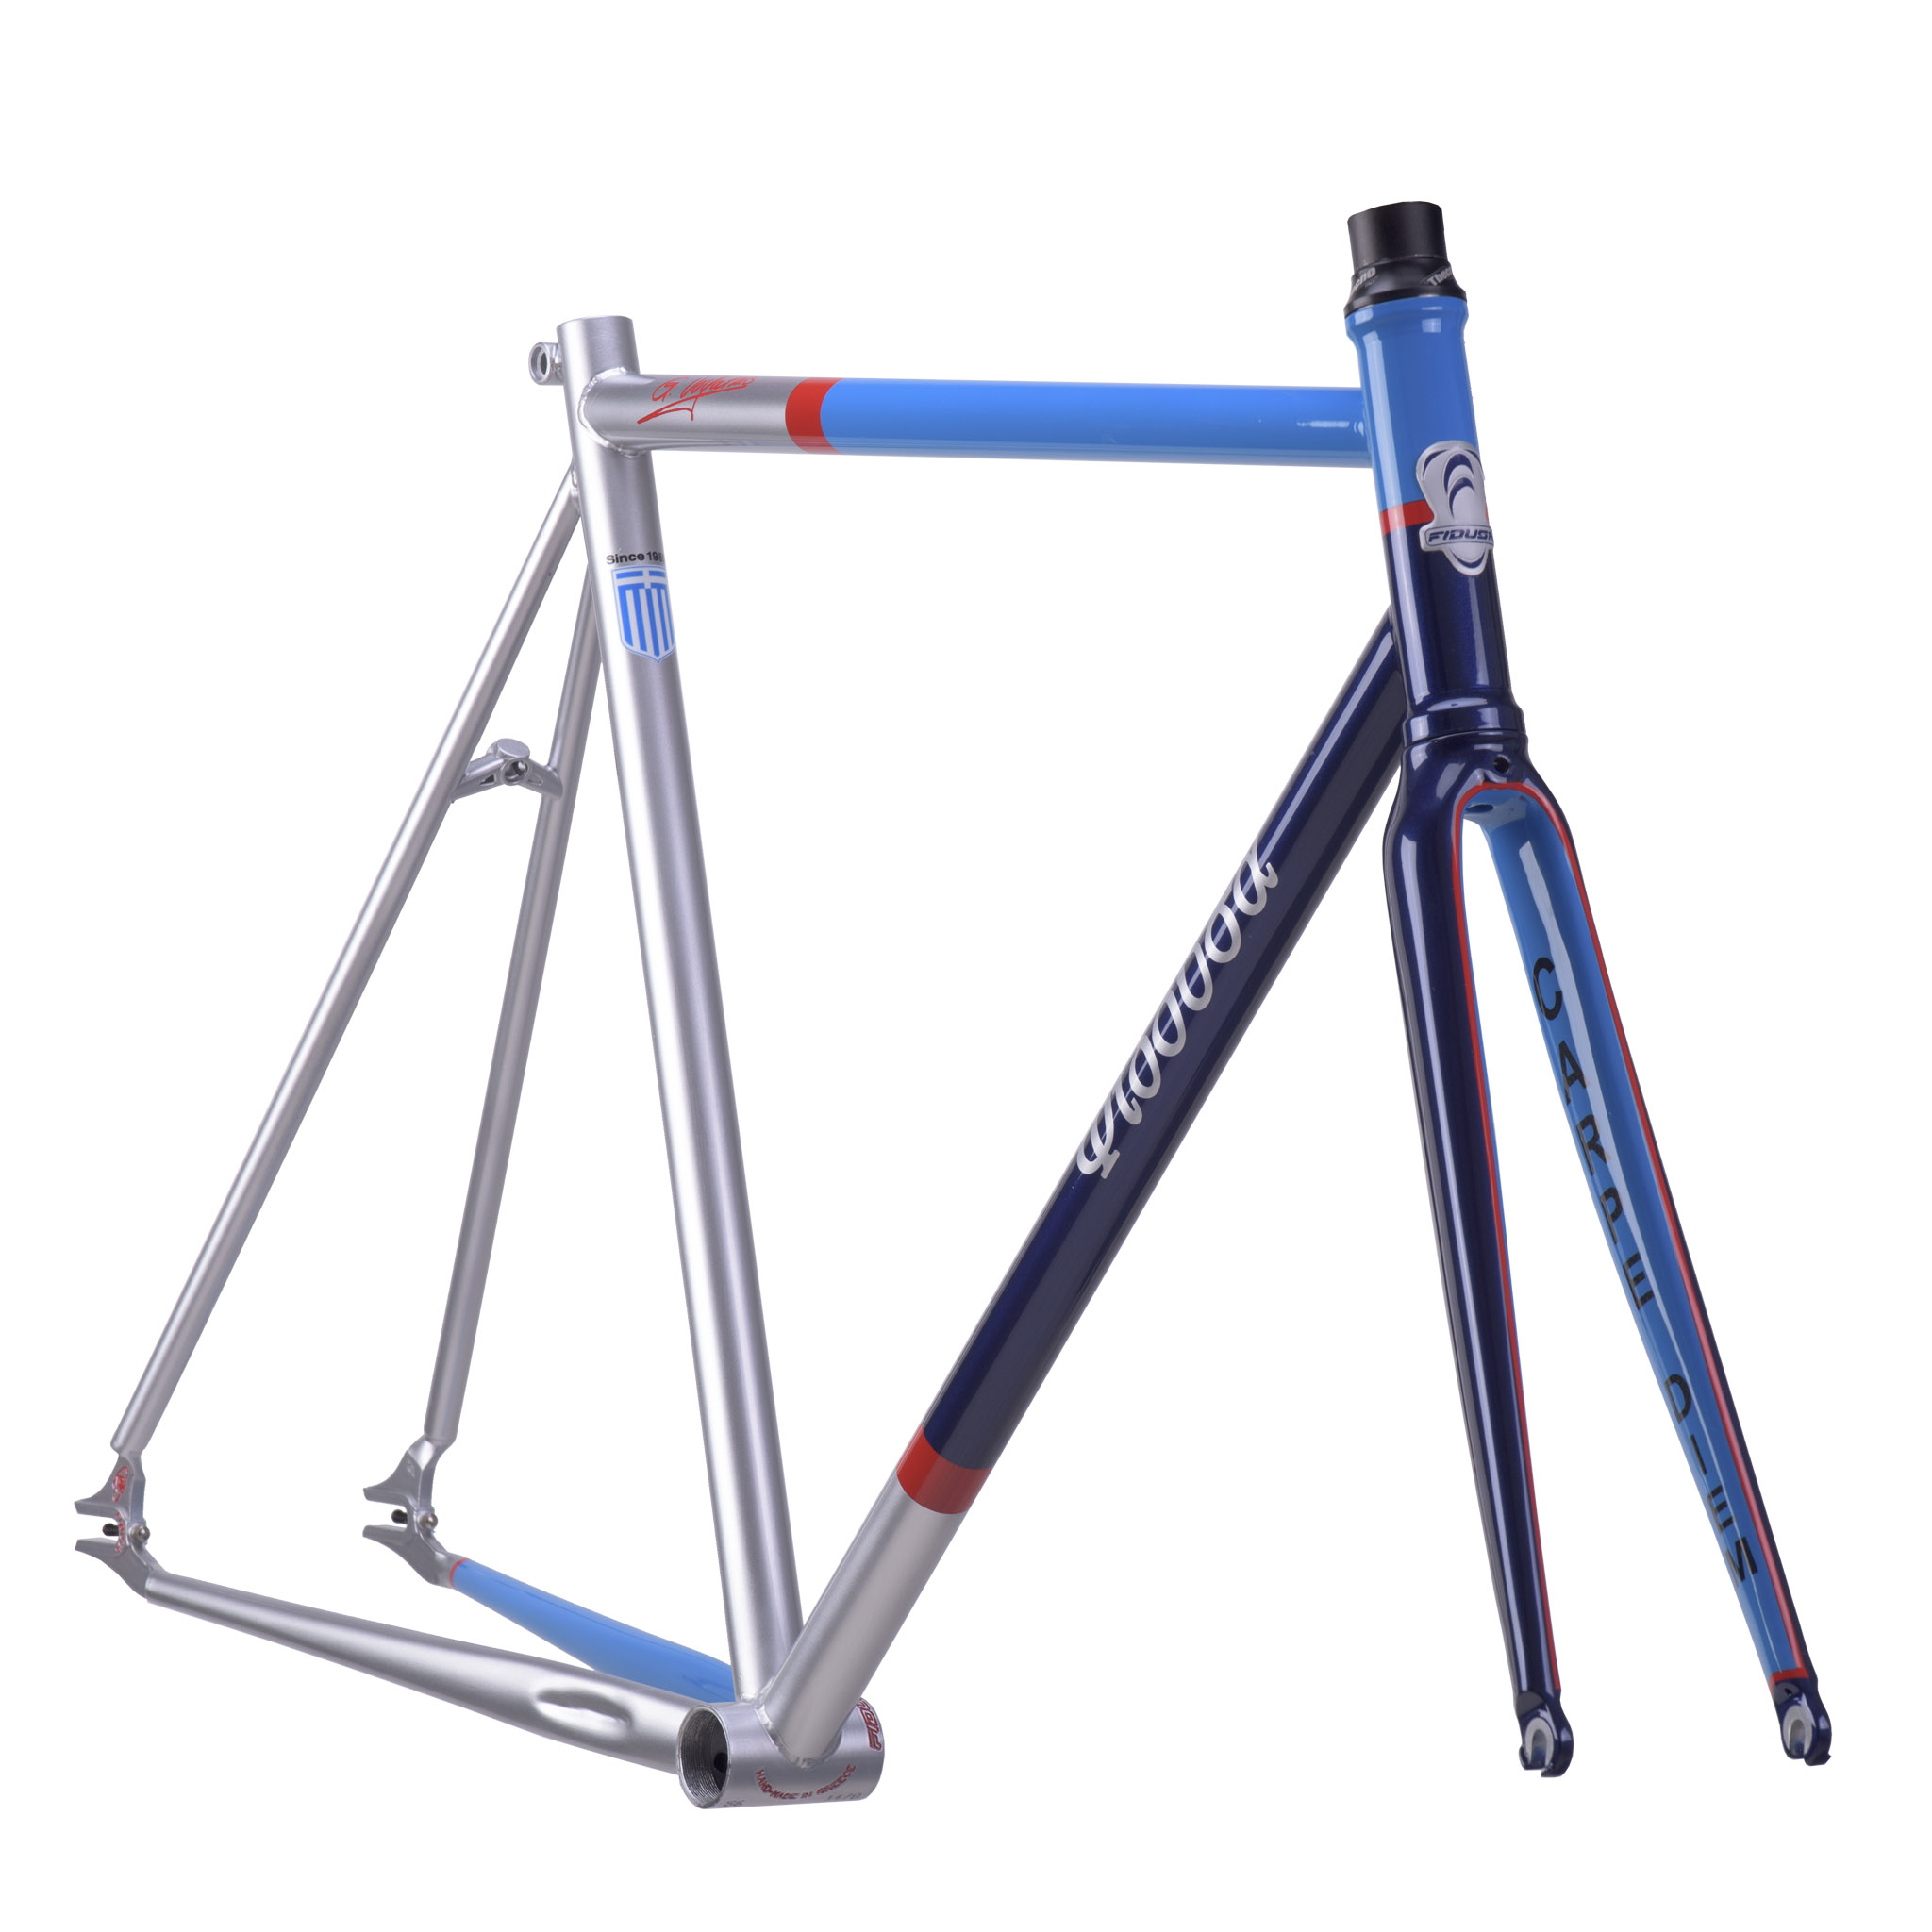 STATHIS-FIX-FRAME-CLEAR Stathi's Single Speed Frame